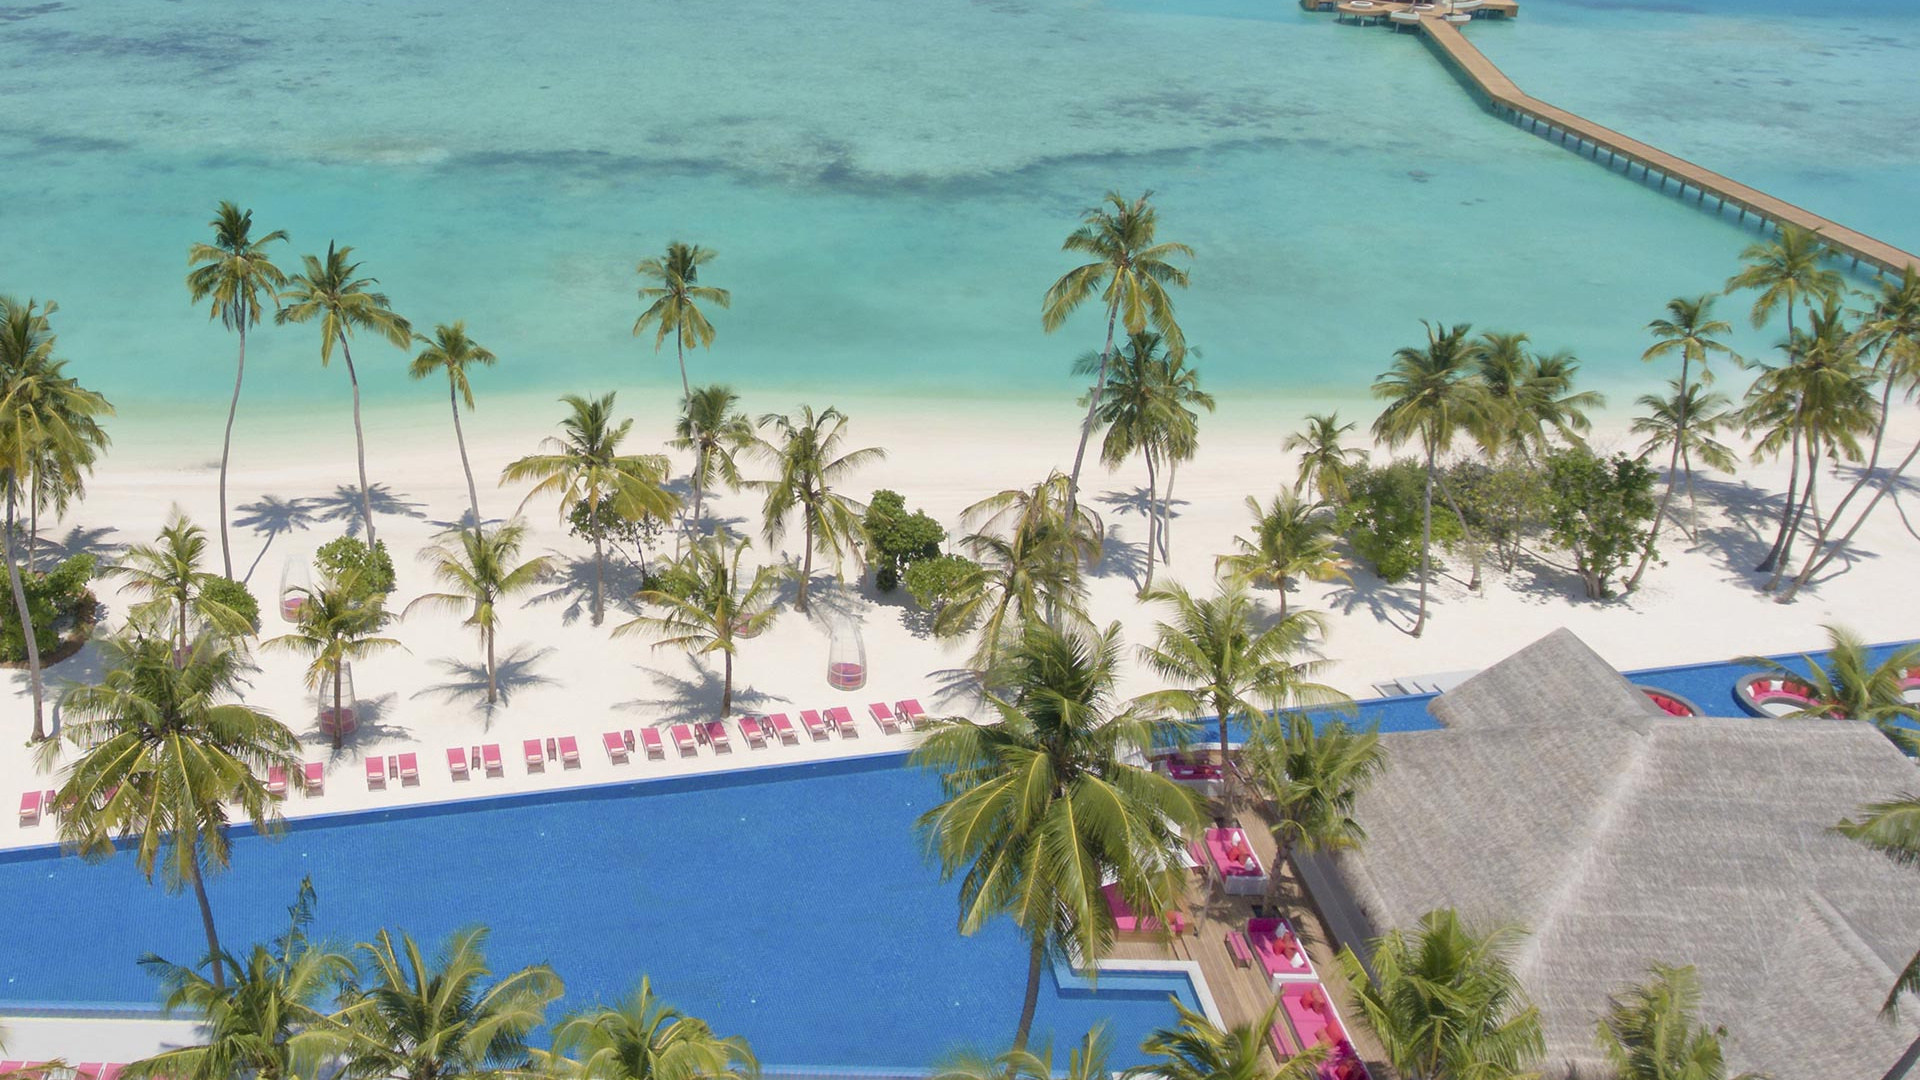 Staying at Kandima Maldives 2017